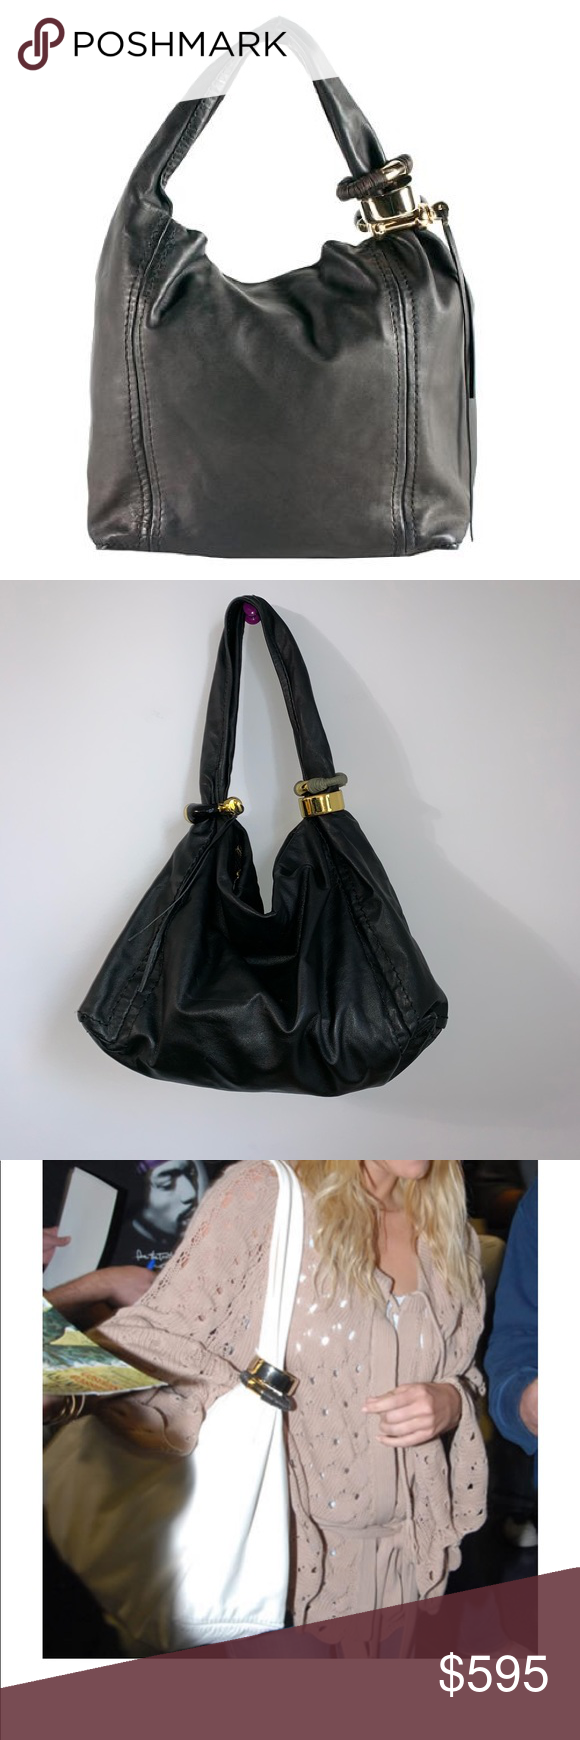 """57e307333bb Authentic Jimmy Choo Saba hobo leather bag black Jimmy Choo bag Excellent  condition Measures 20""""x13"""" drop 13"""" Jimmy Choo Bags Hobos"""